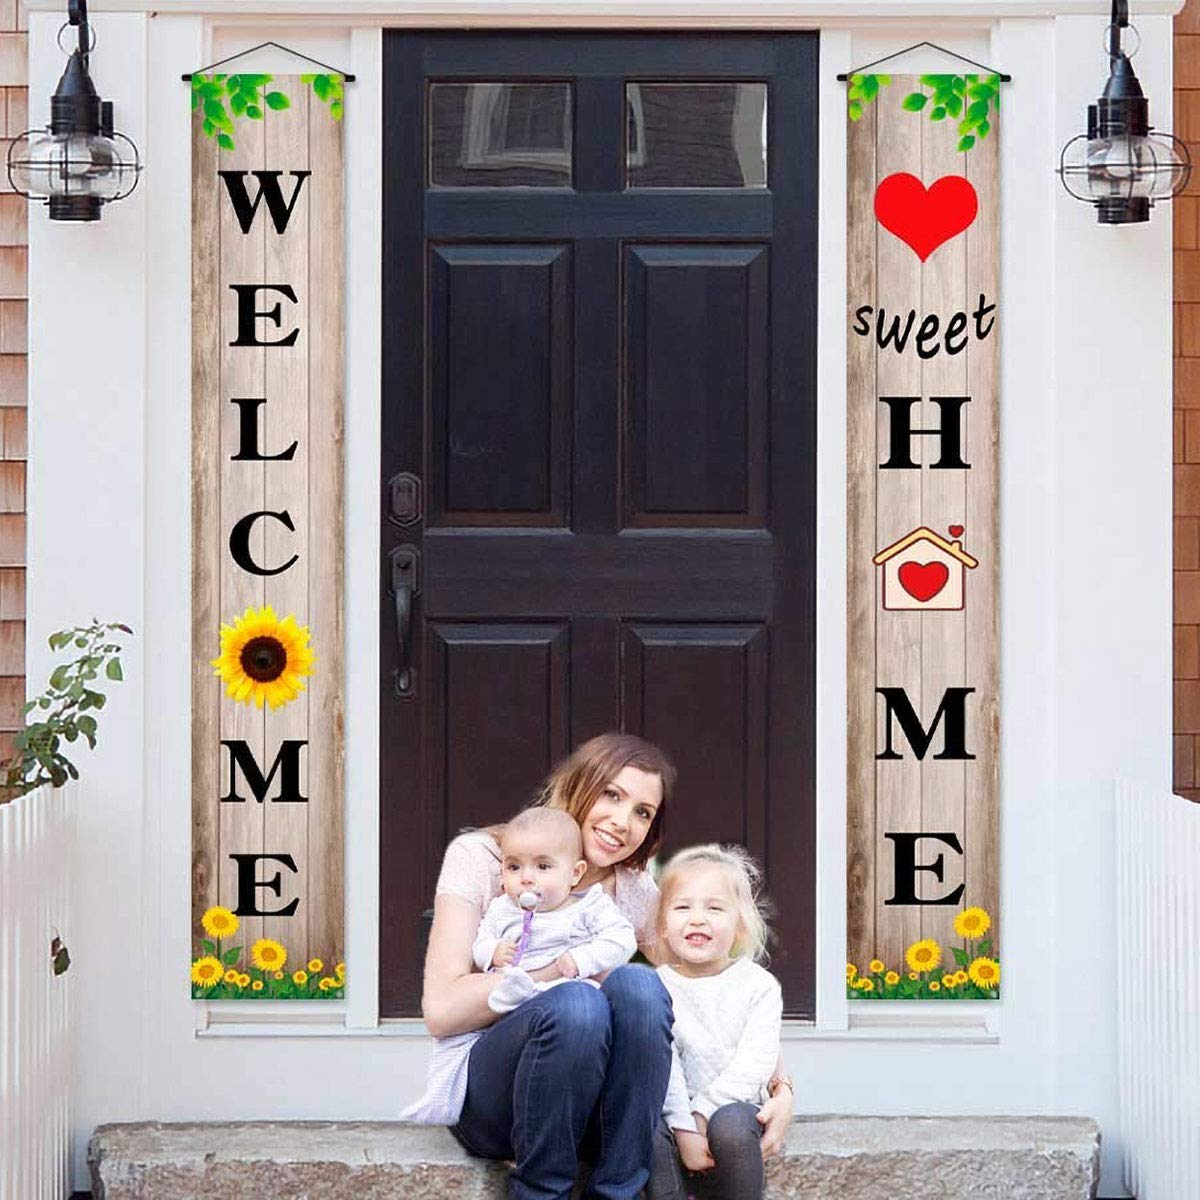 Welcome Home Decoration Banner Friends Husband Family Baby Homecoming Welcome Sign Gathering Party&Housewarming Celebration Decor and Supplies